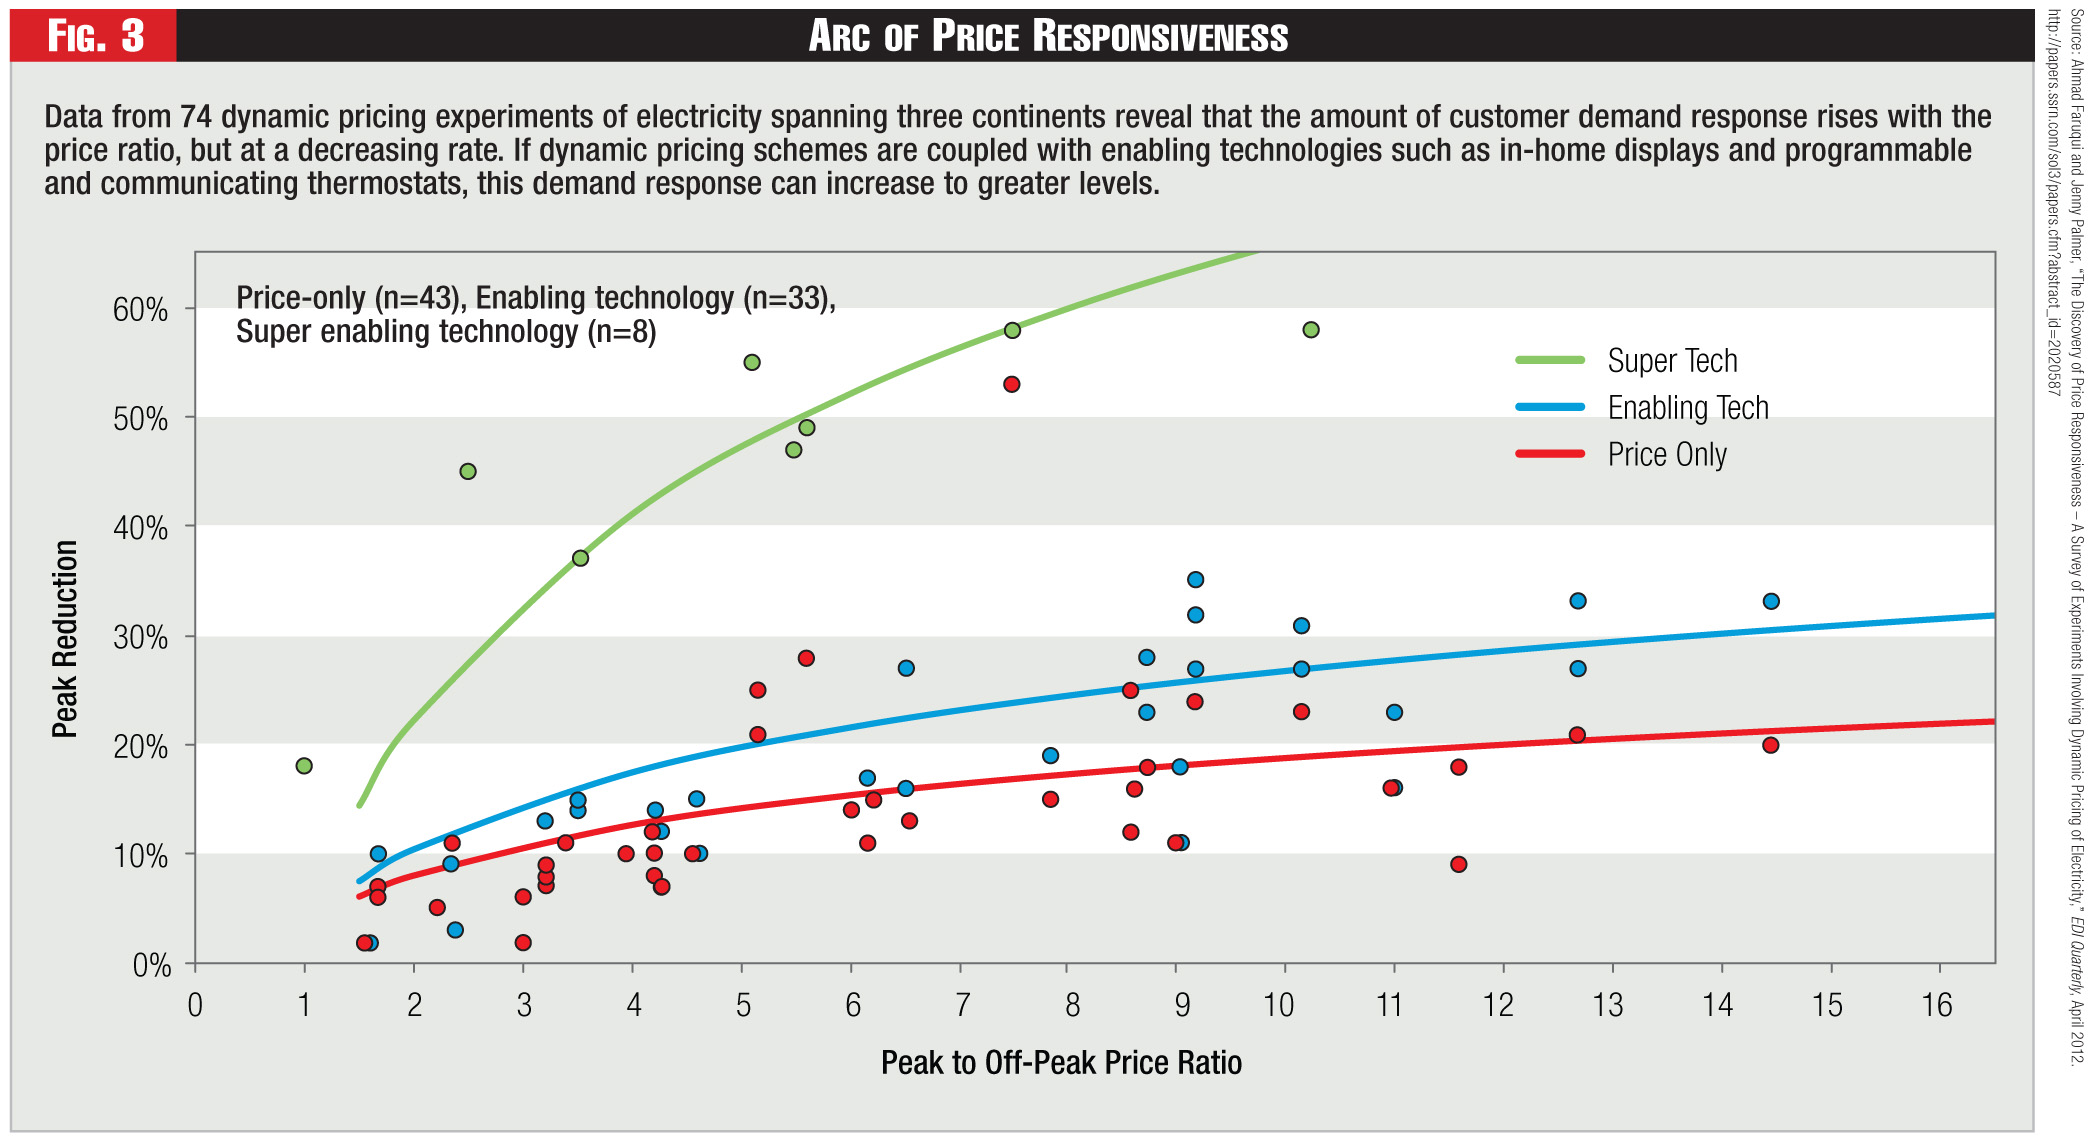 Figure 3 - Arc of Price Responsiveness